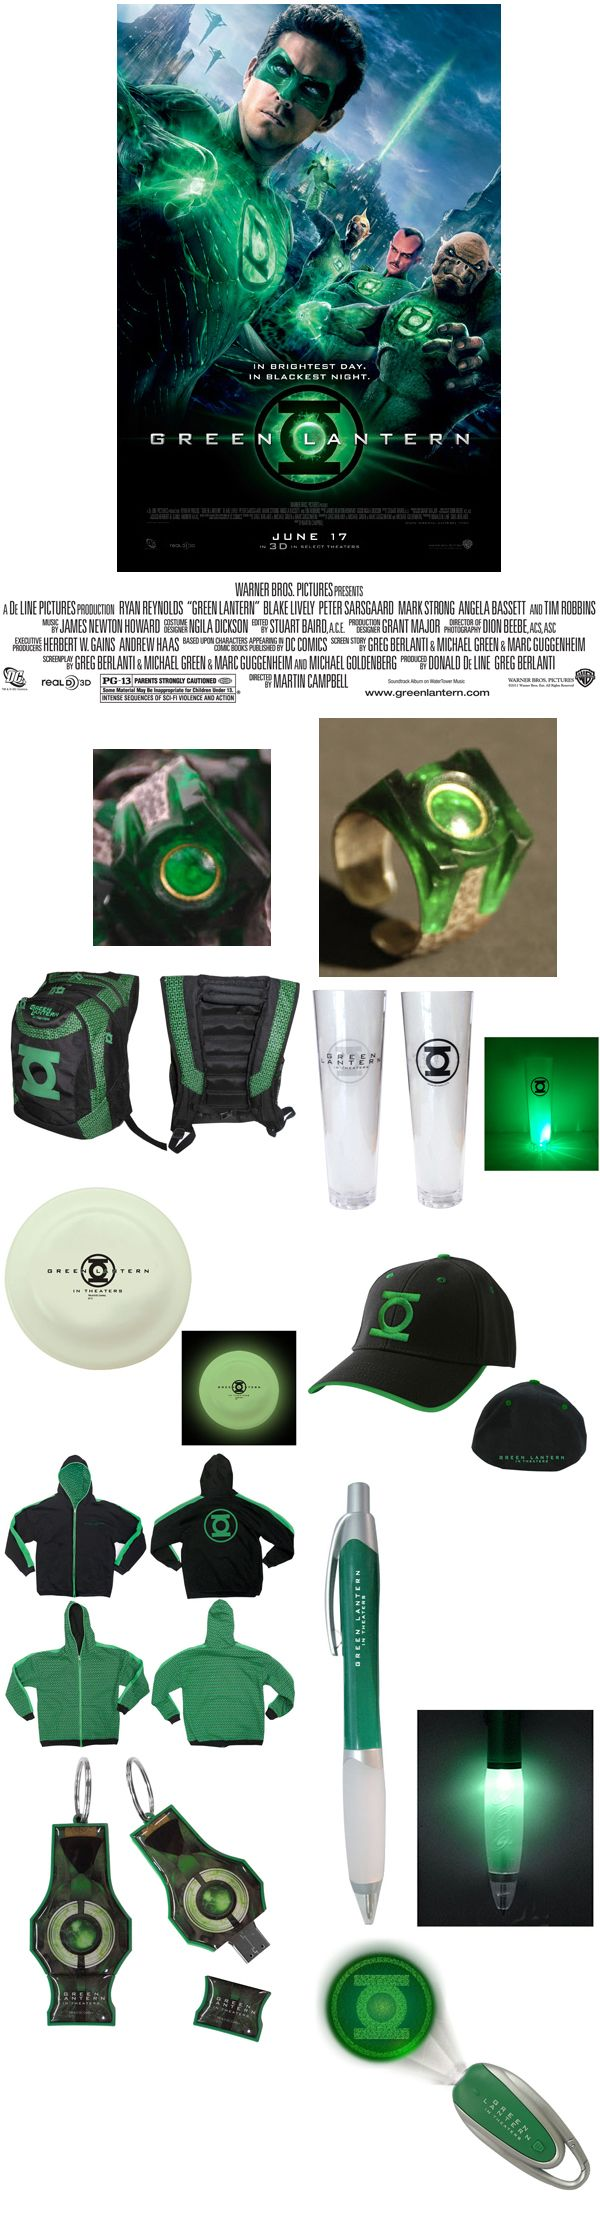 Green Lantern movie giveaway